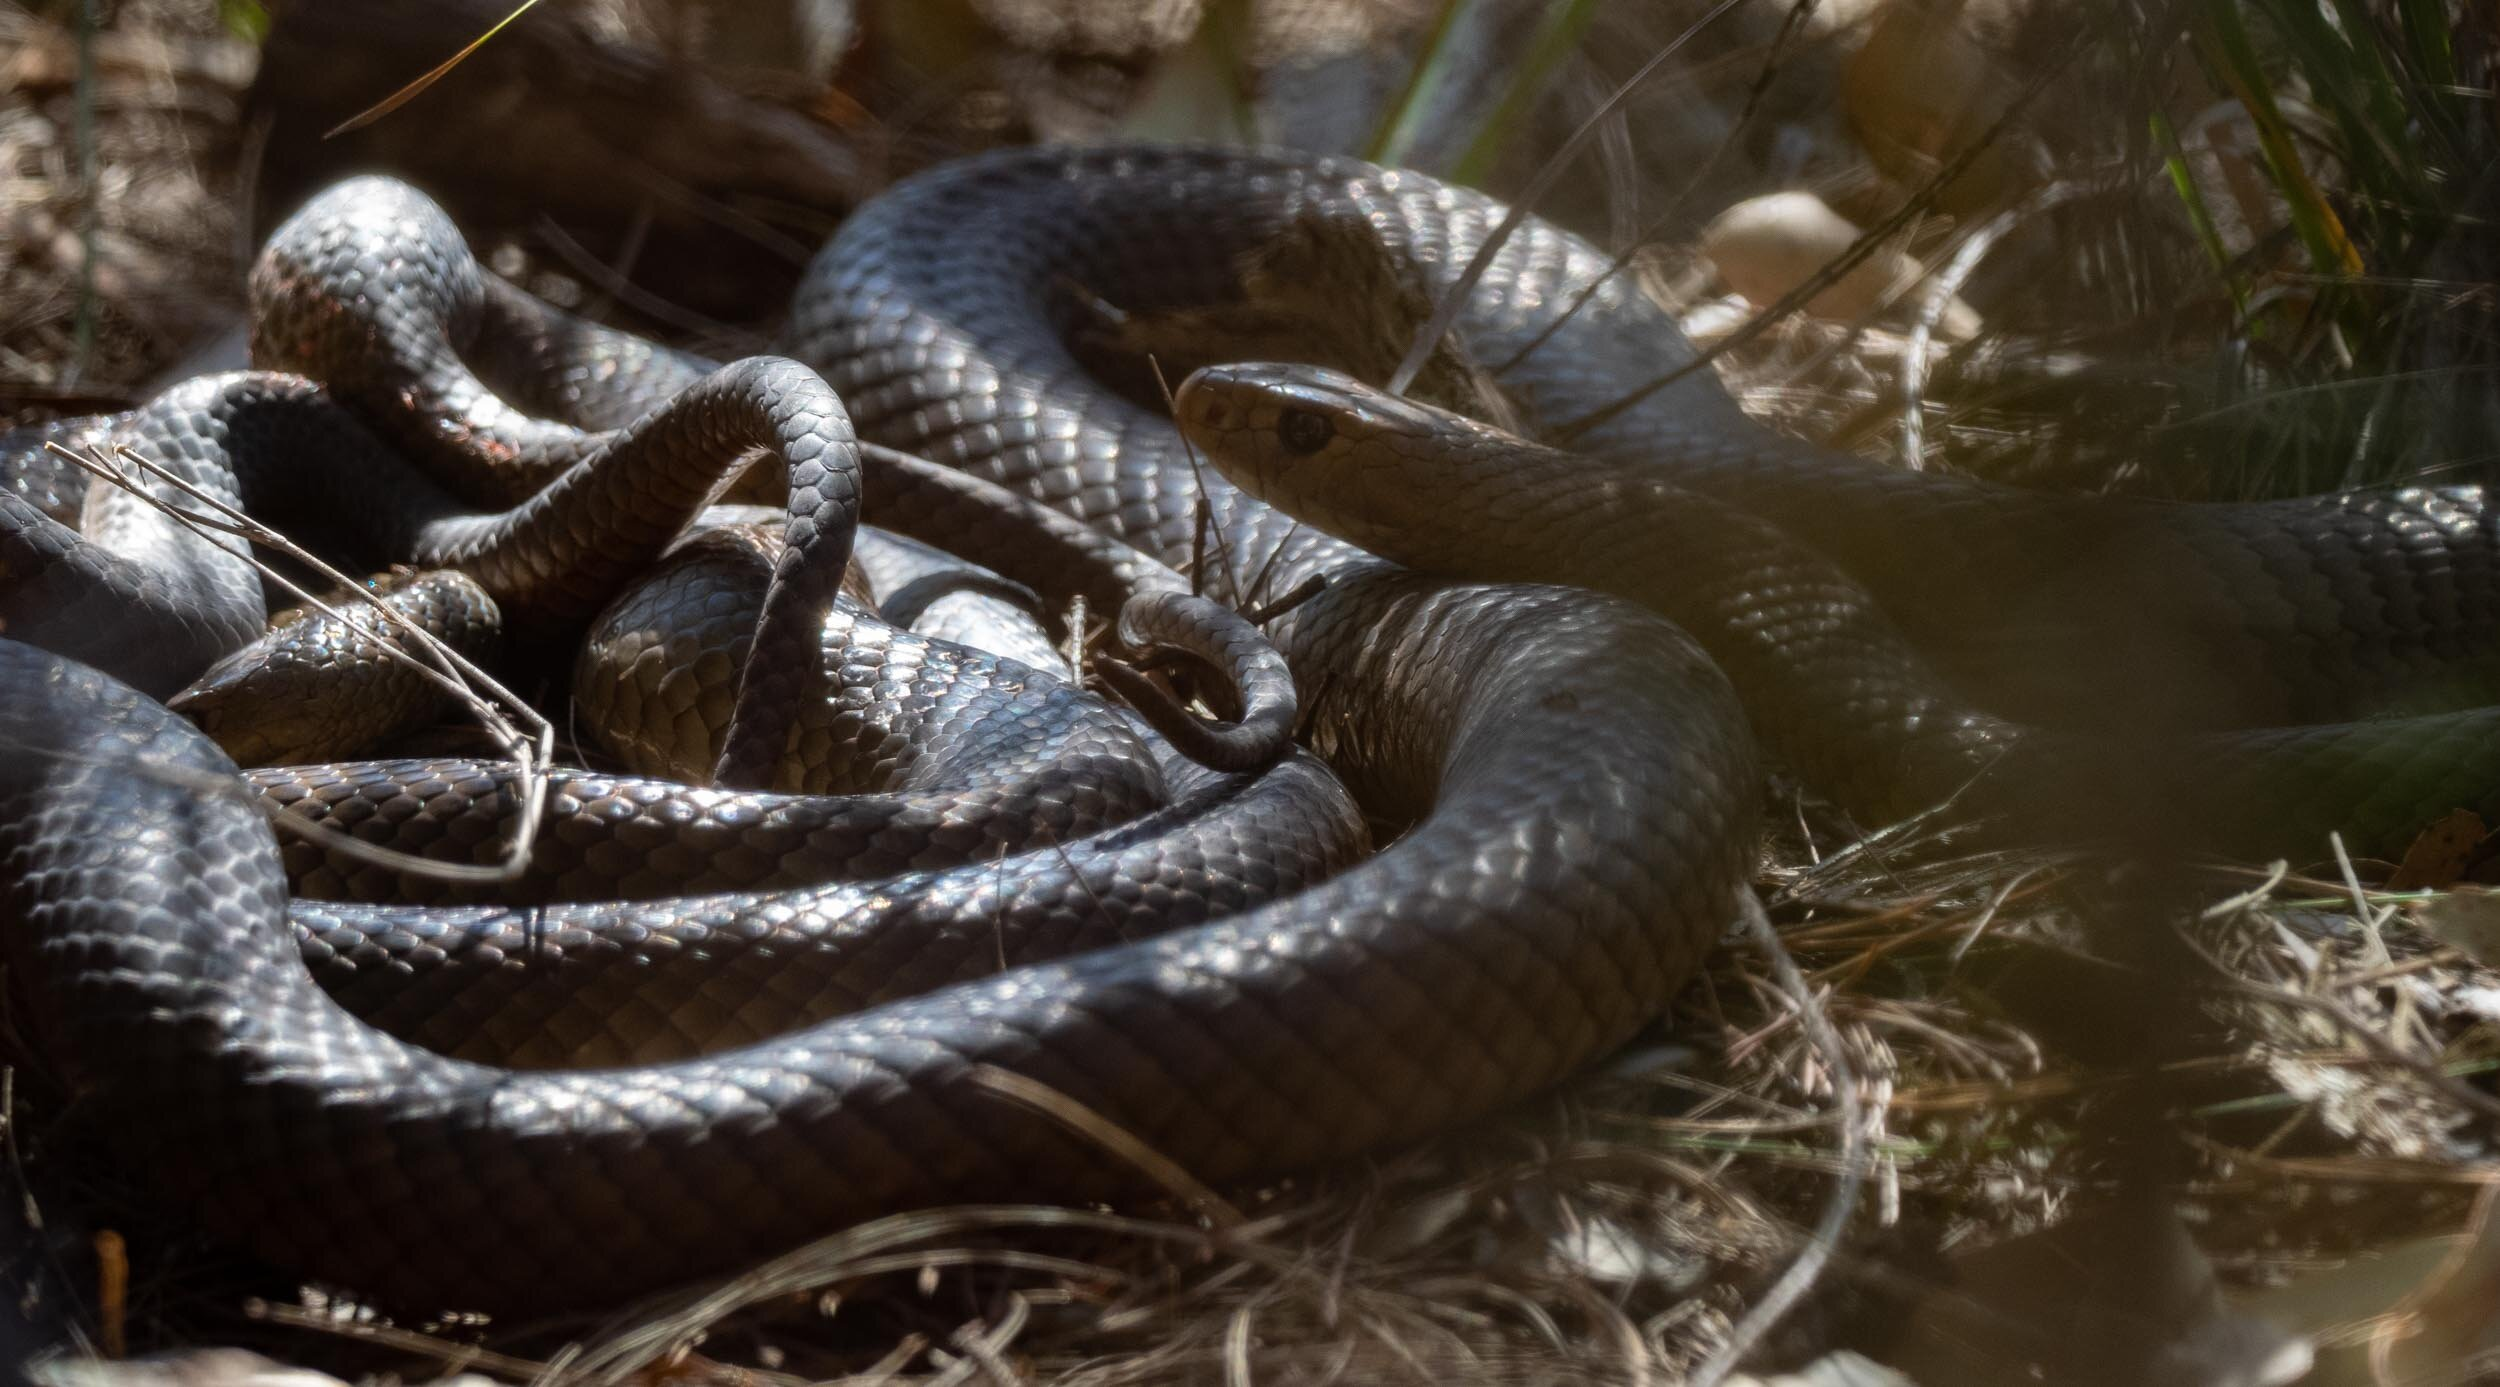 Two heads, two tails … two rather sizeable snakes